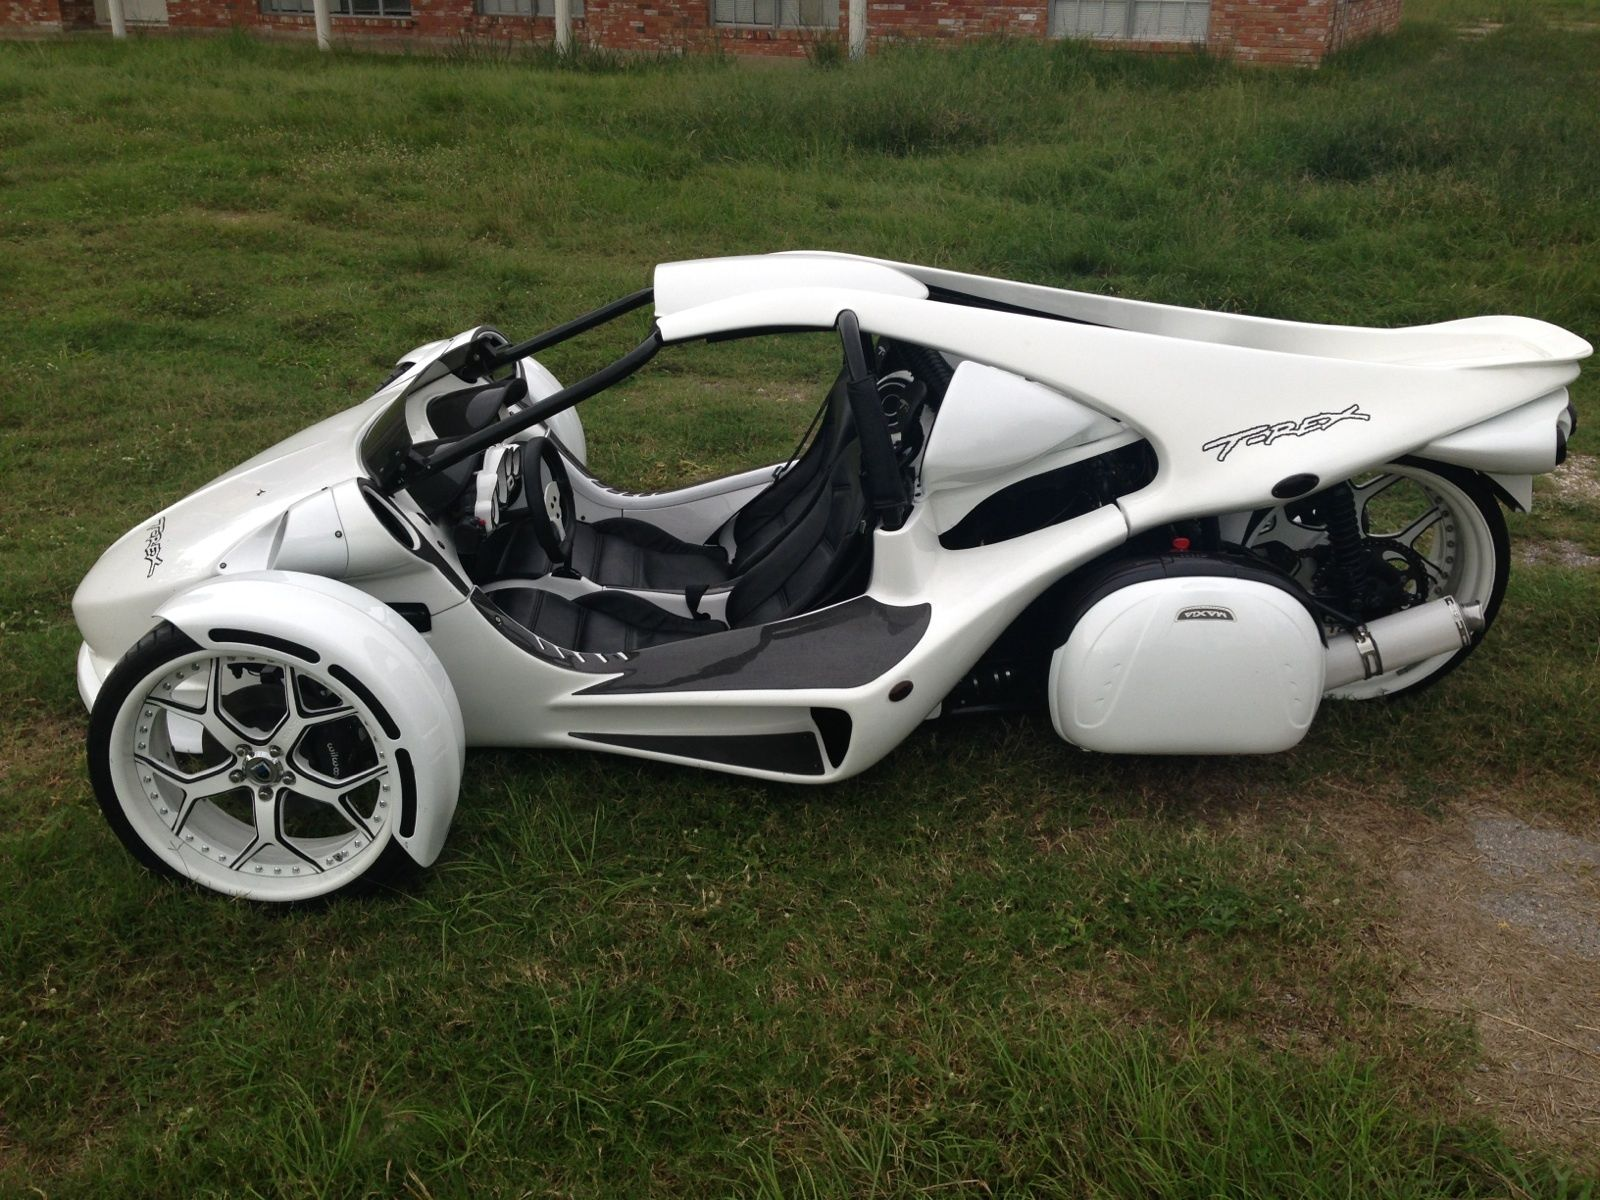 2005 campagna t rex full custom super clean. Black Bedroom Furniture Sets. Home Design Ideas